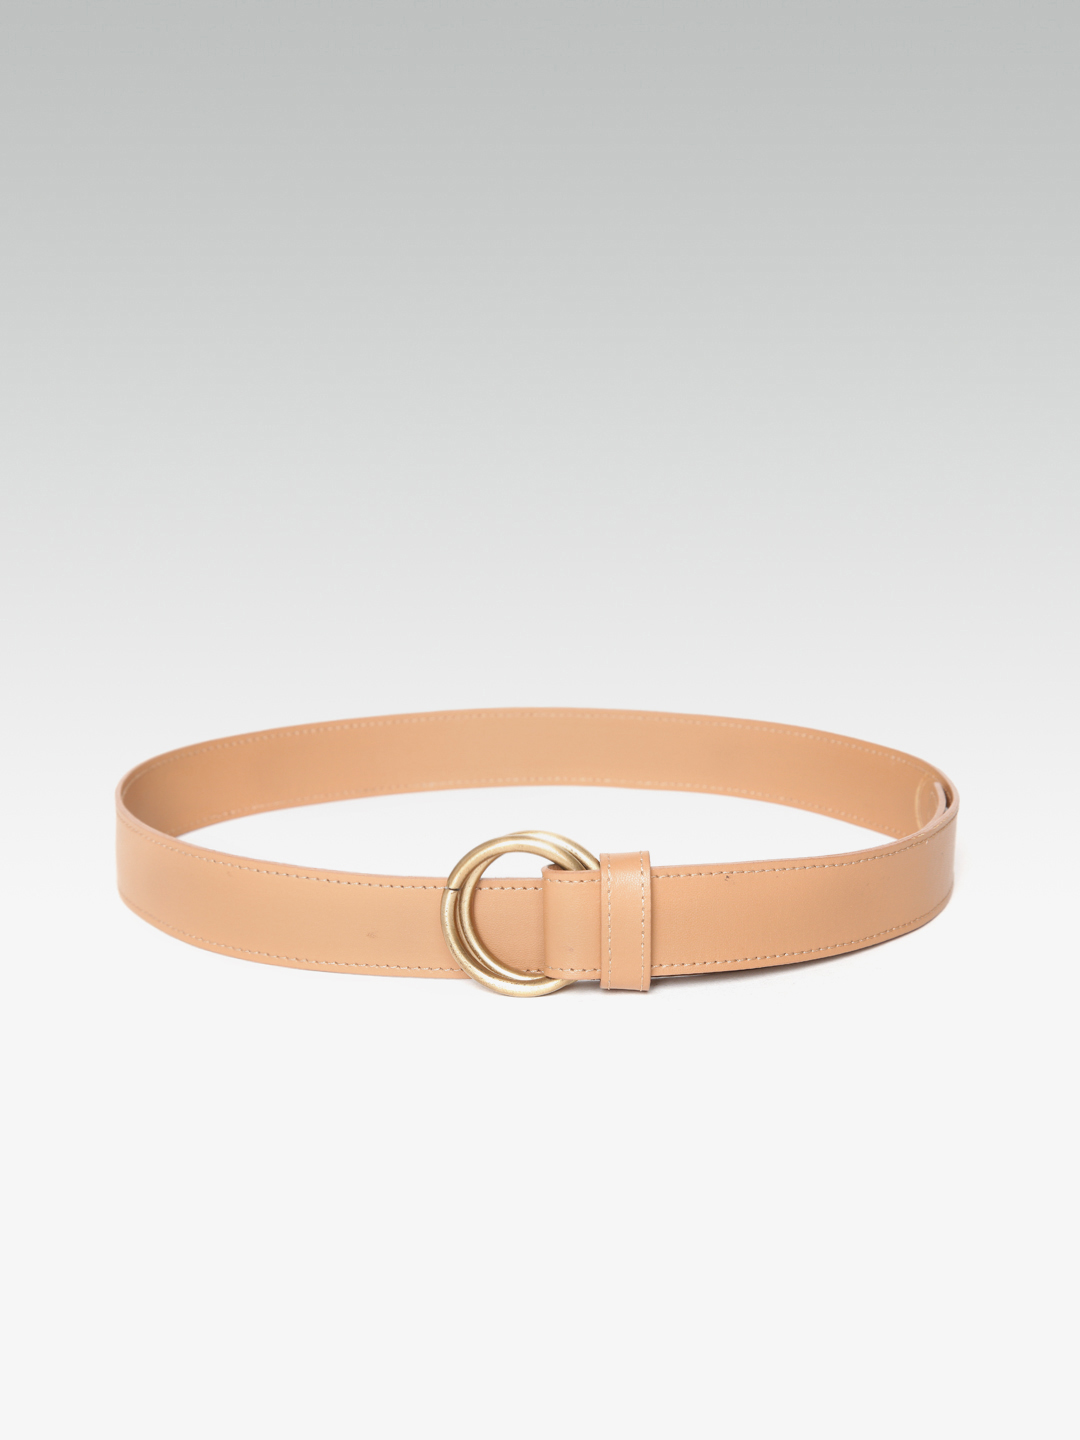 Belts-Twin Spin Beige Waist Belt3